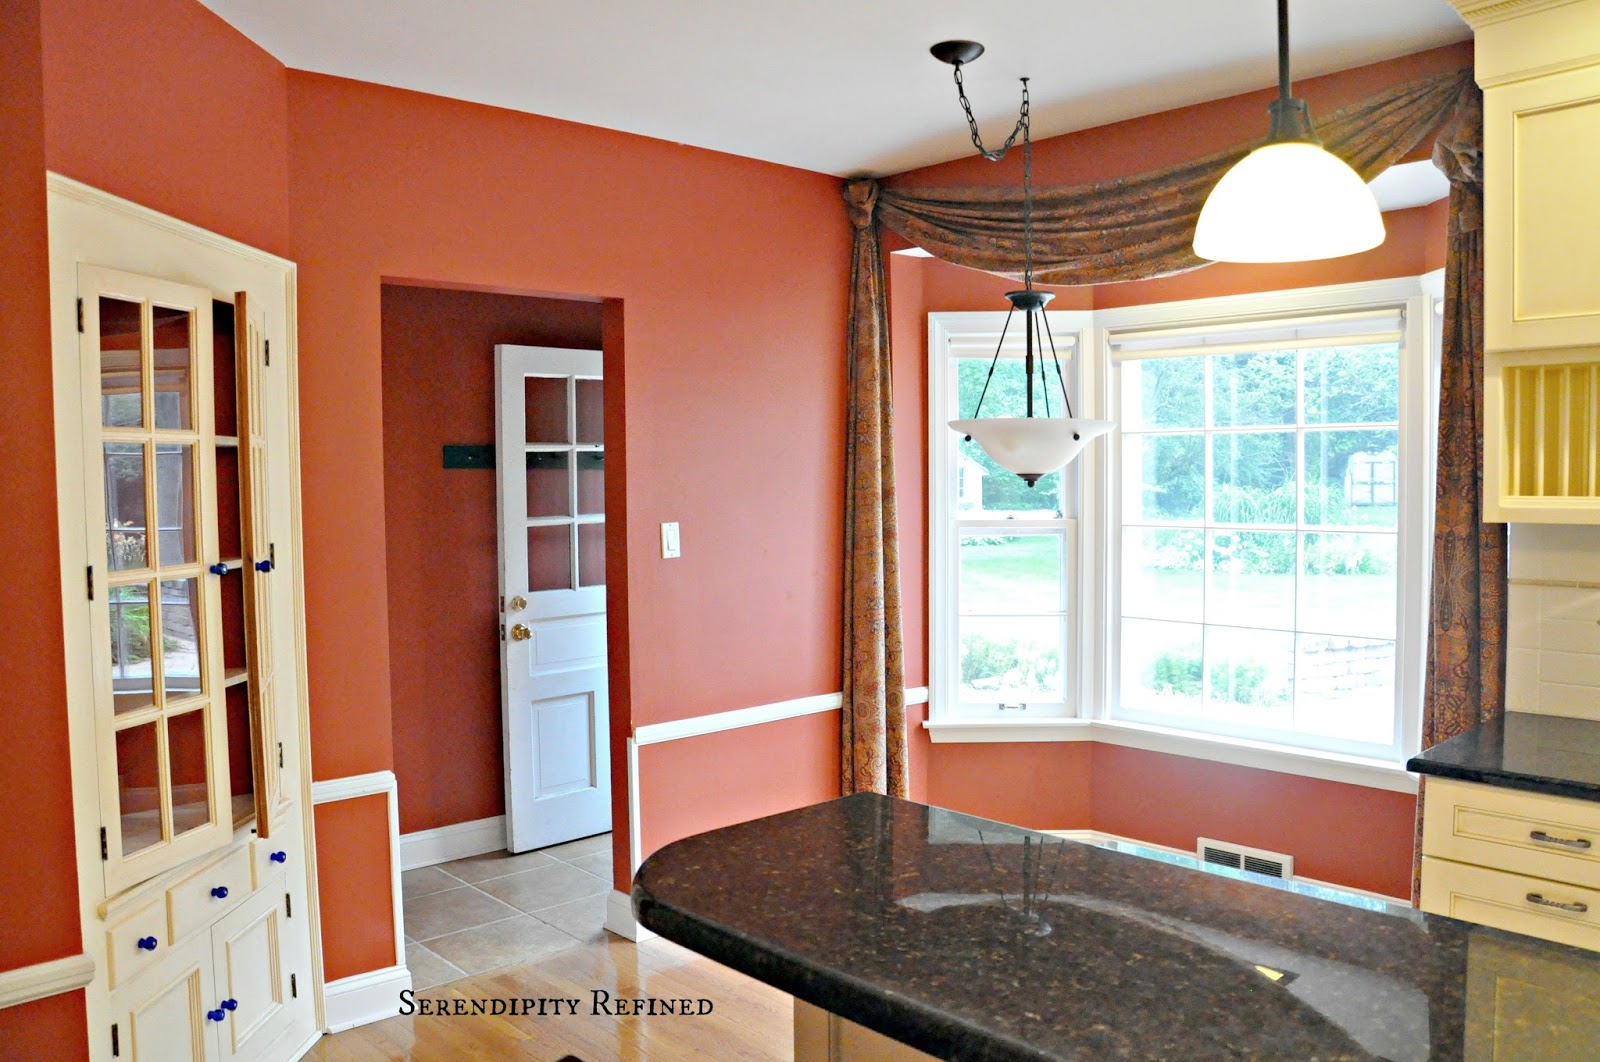 Serendipity refined blog french farm house kitchen for Grey kitchen cabinets with red walls